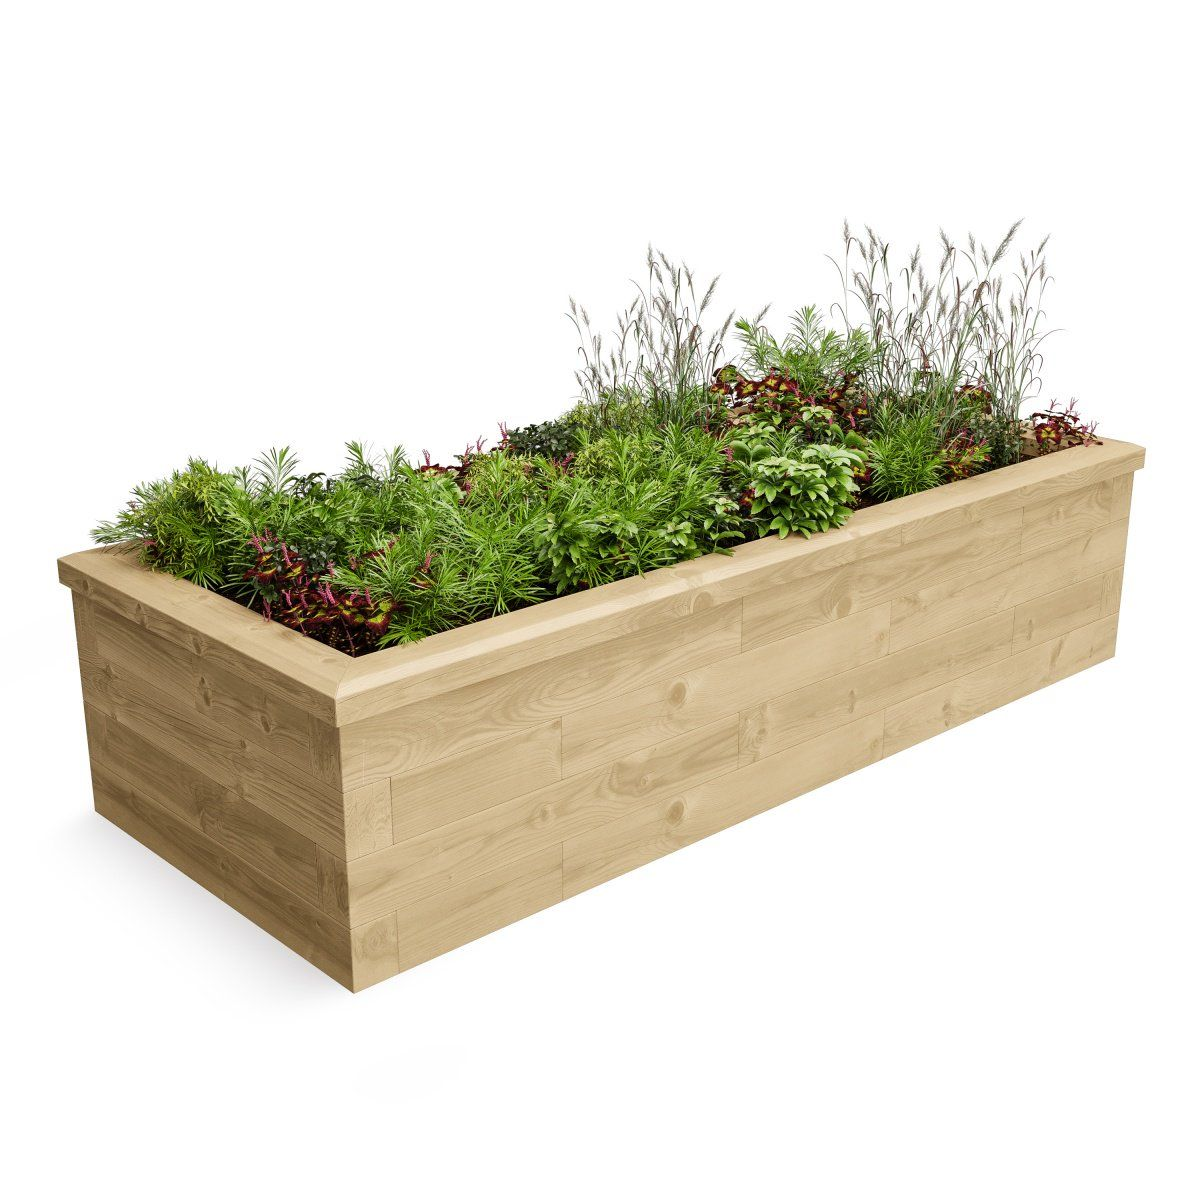 Slim Raised Bed, woodblox connecting beds | Garden and landscape ...